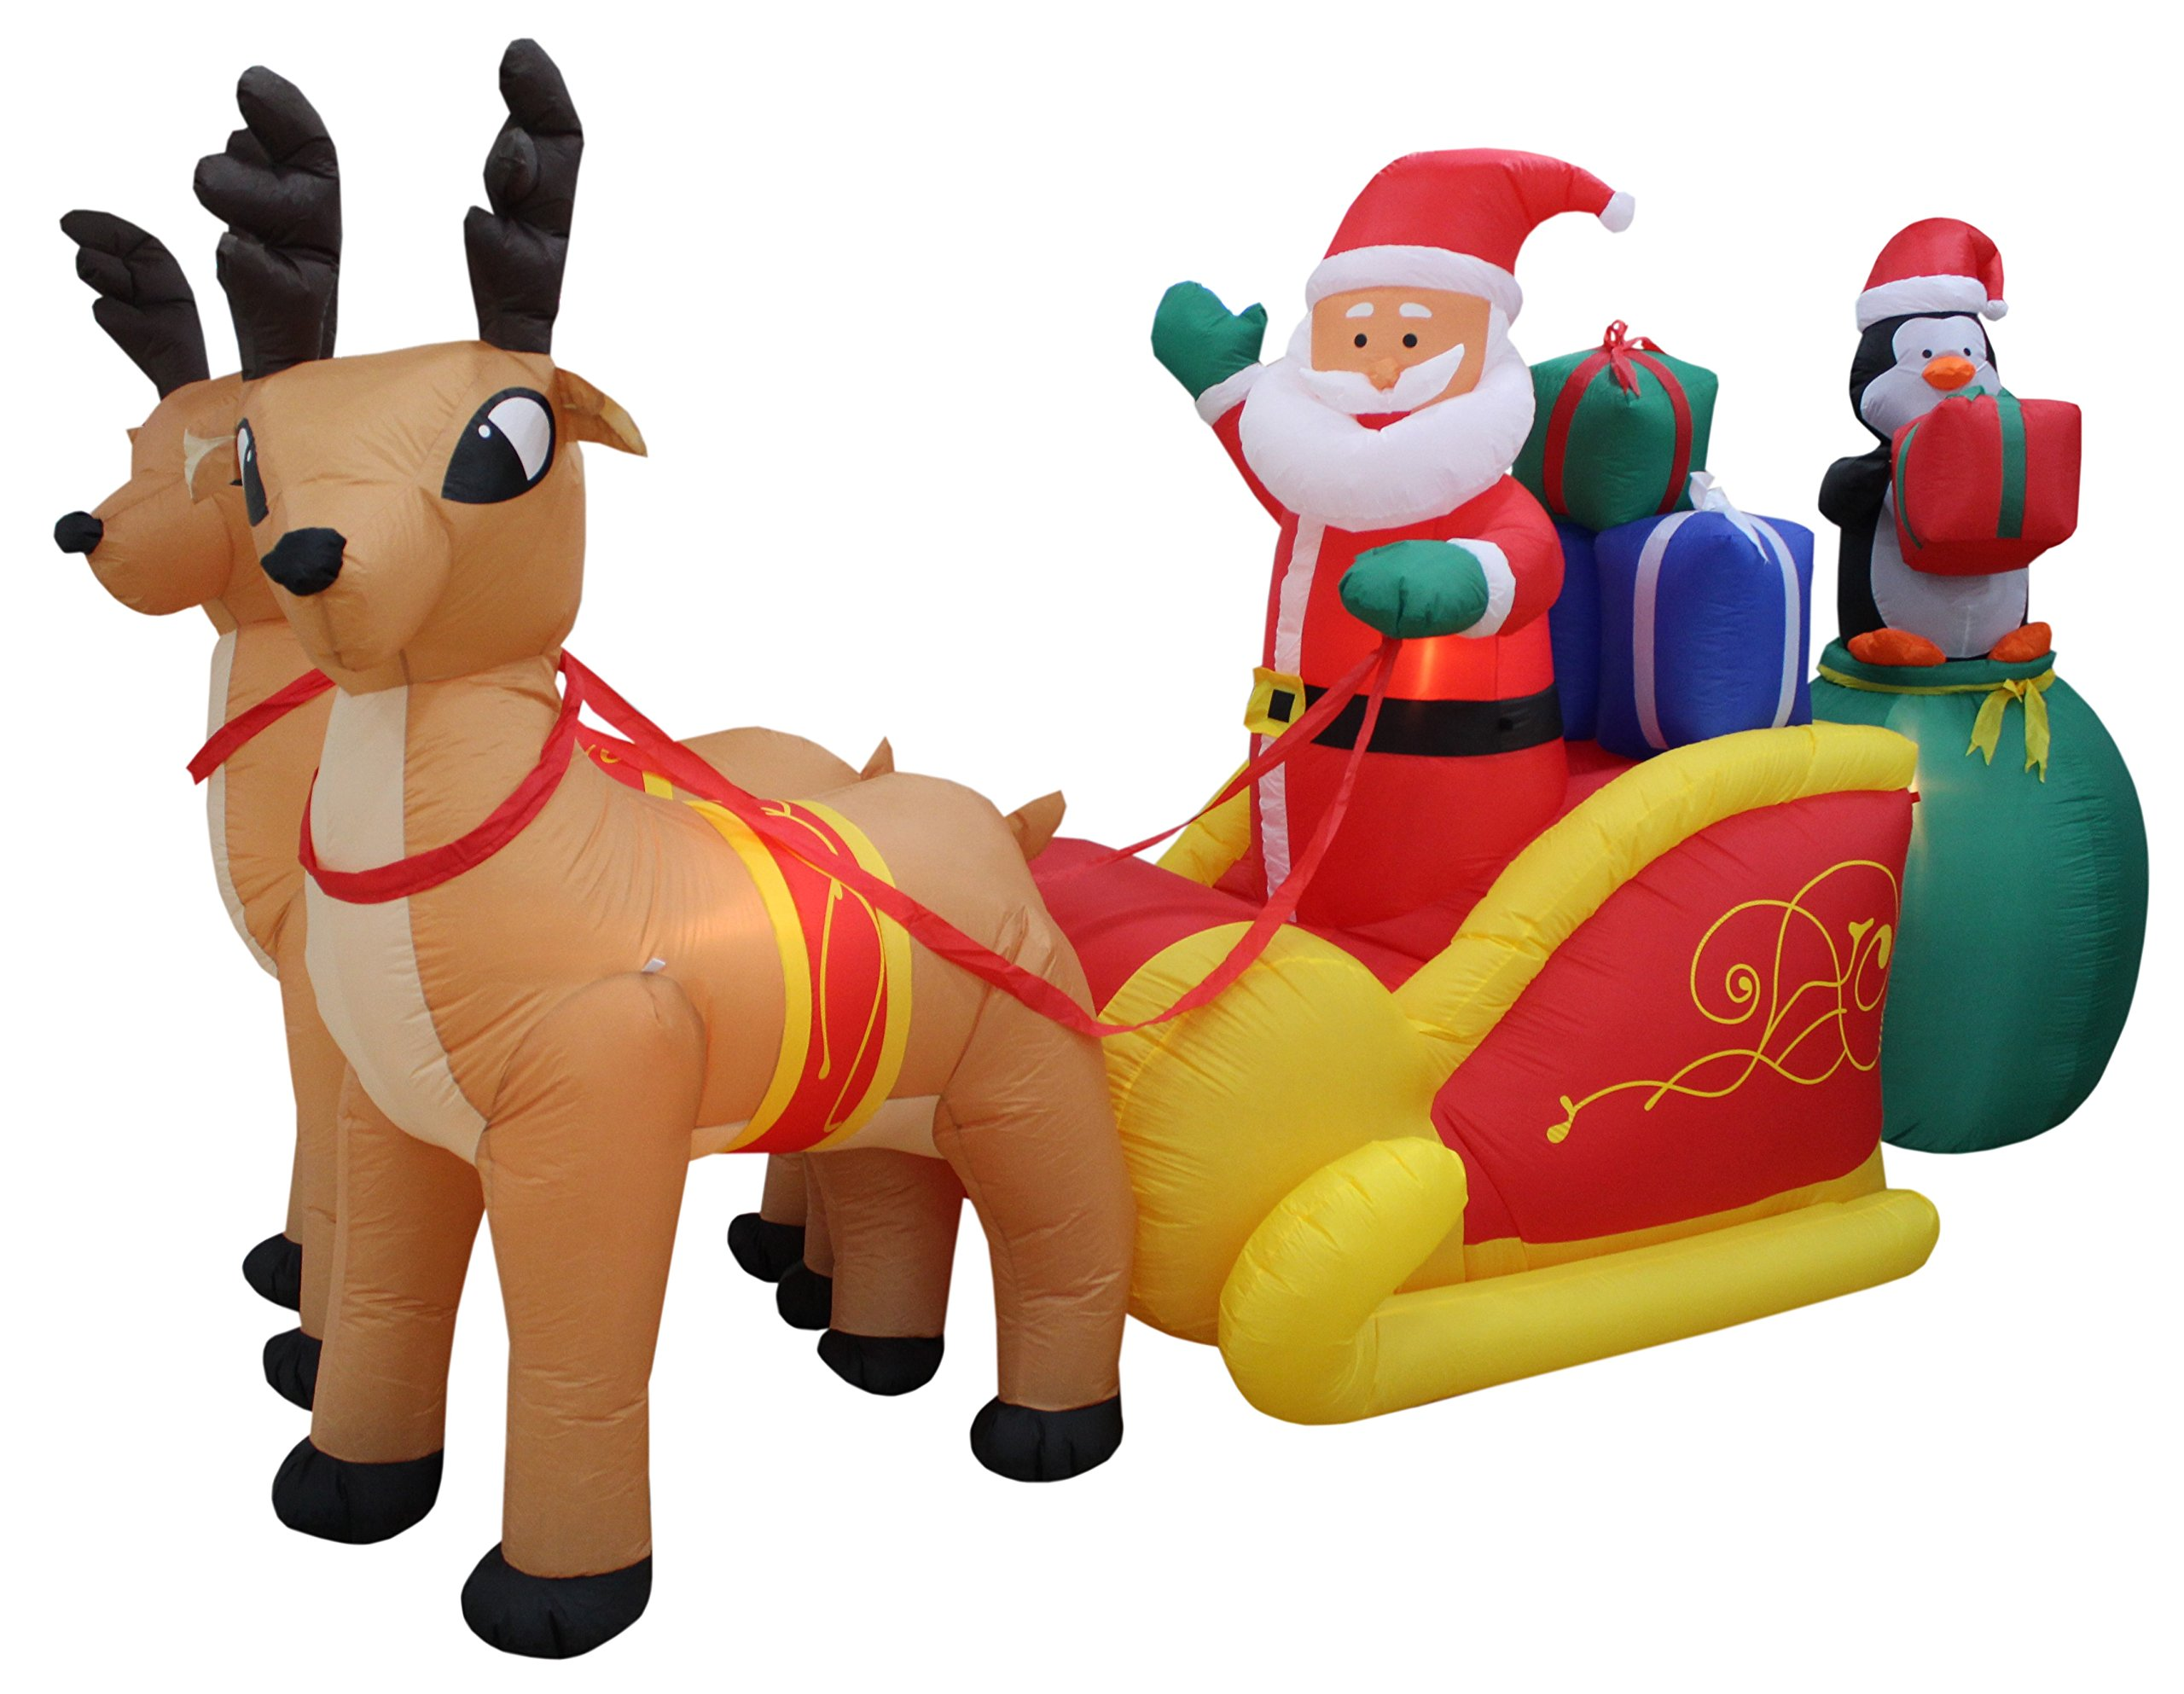 13 Foot Long Lighted Christmas Inflatable Santa Claus and Penguin with Gift in Sleigh Pulled by 2 Reindeer Decoration by BZB Goods